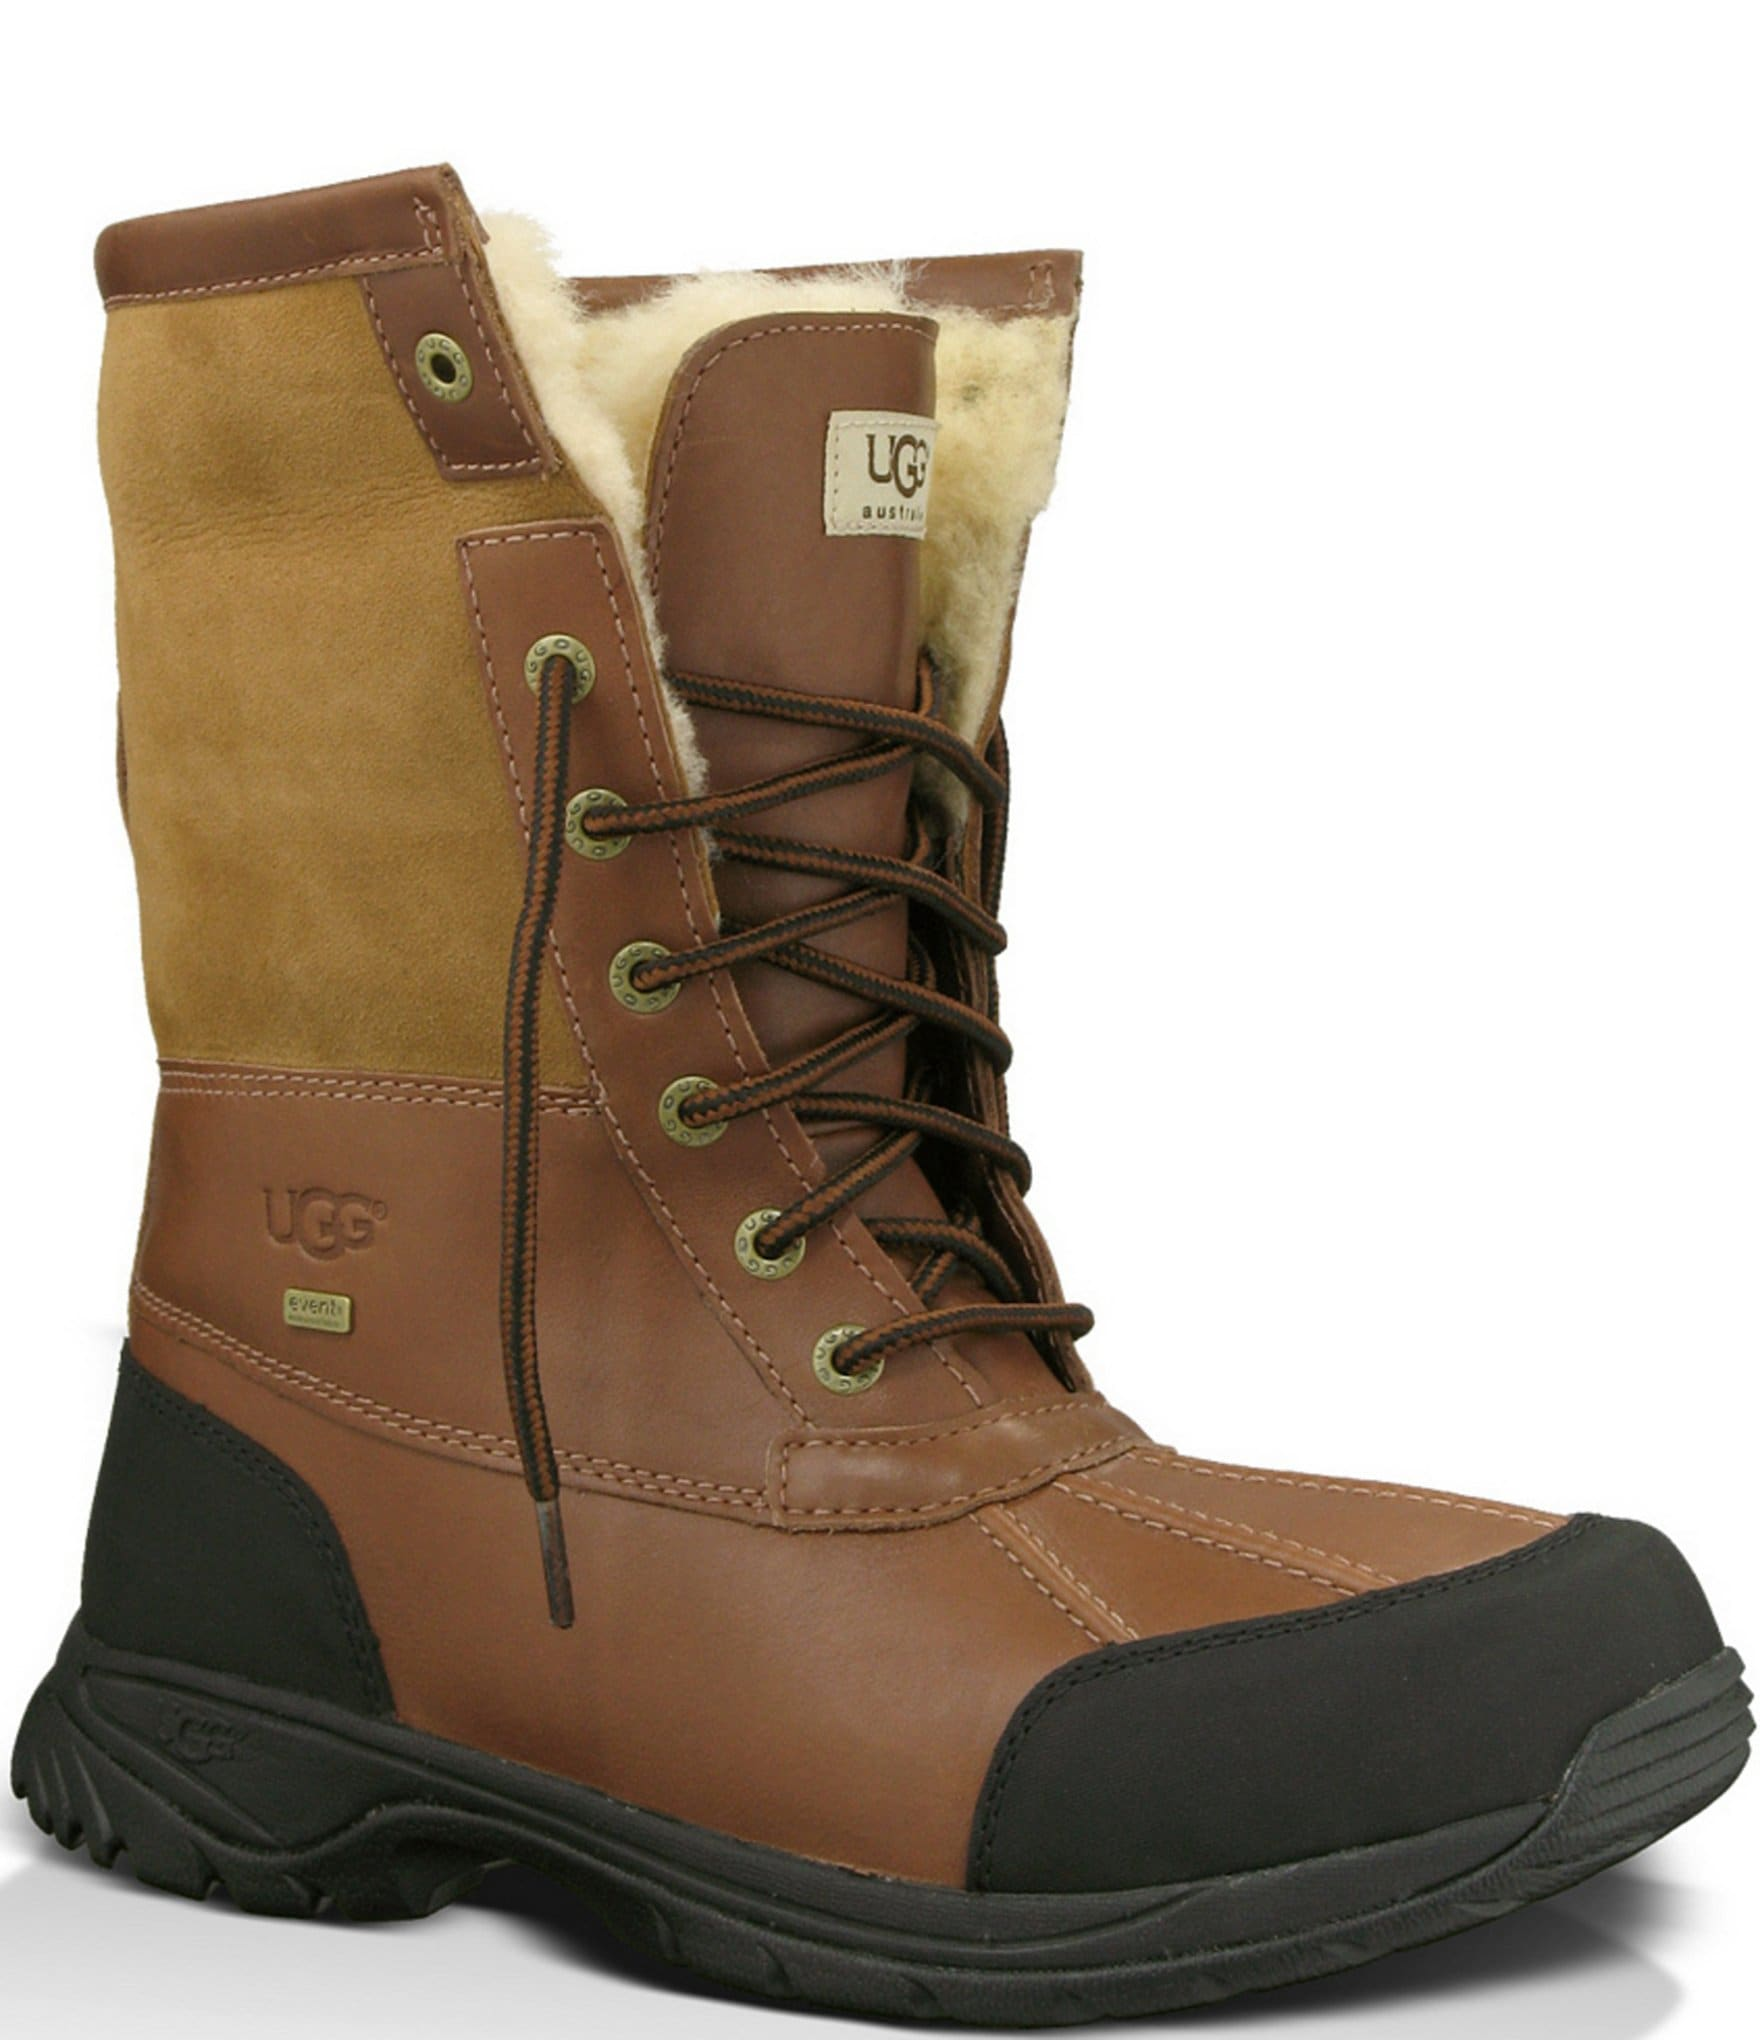 1a348f49db4 UGG® Men's Butte Waterproof Winter Boots | Dillard's